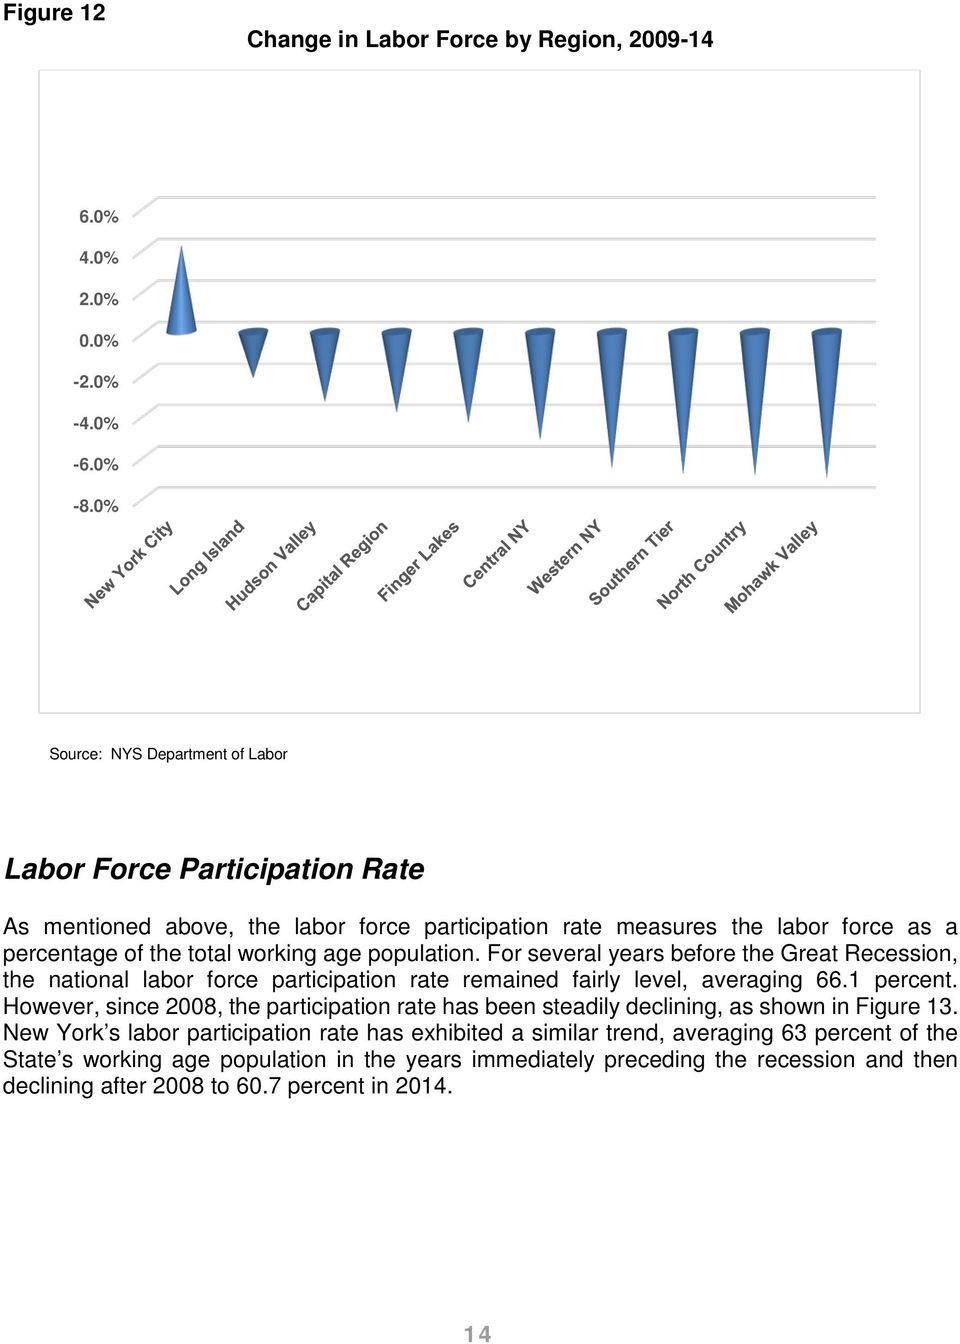 population. For several years before the Great Recession, the national labor force participation rate remained fairly level, averaging 66.1 percent.